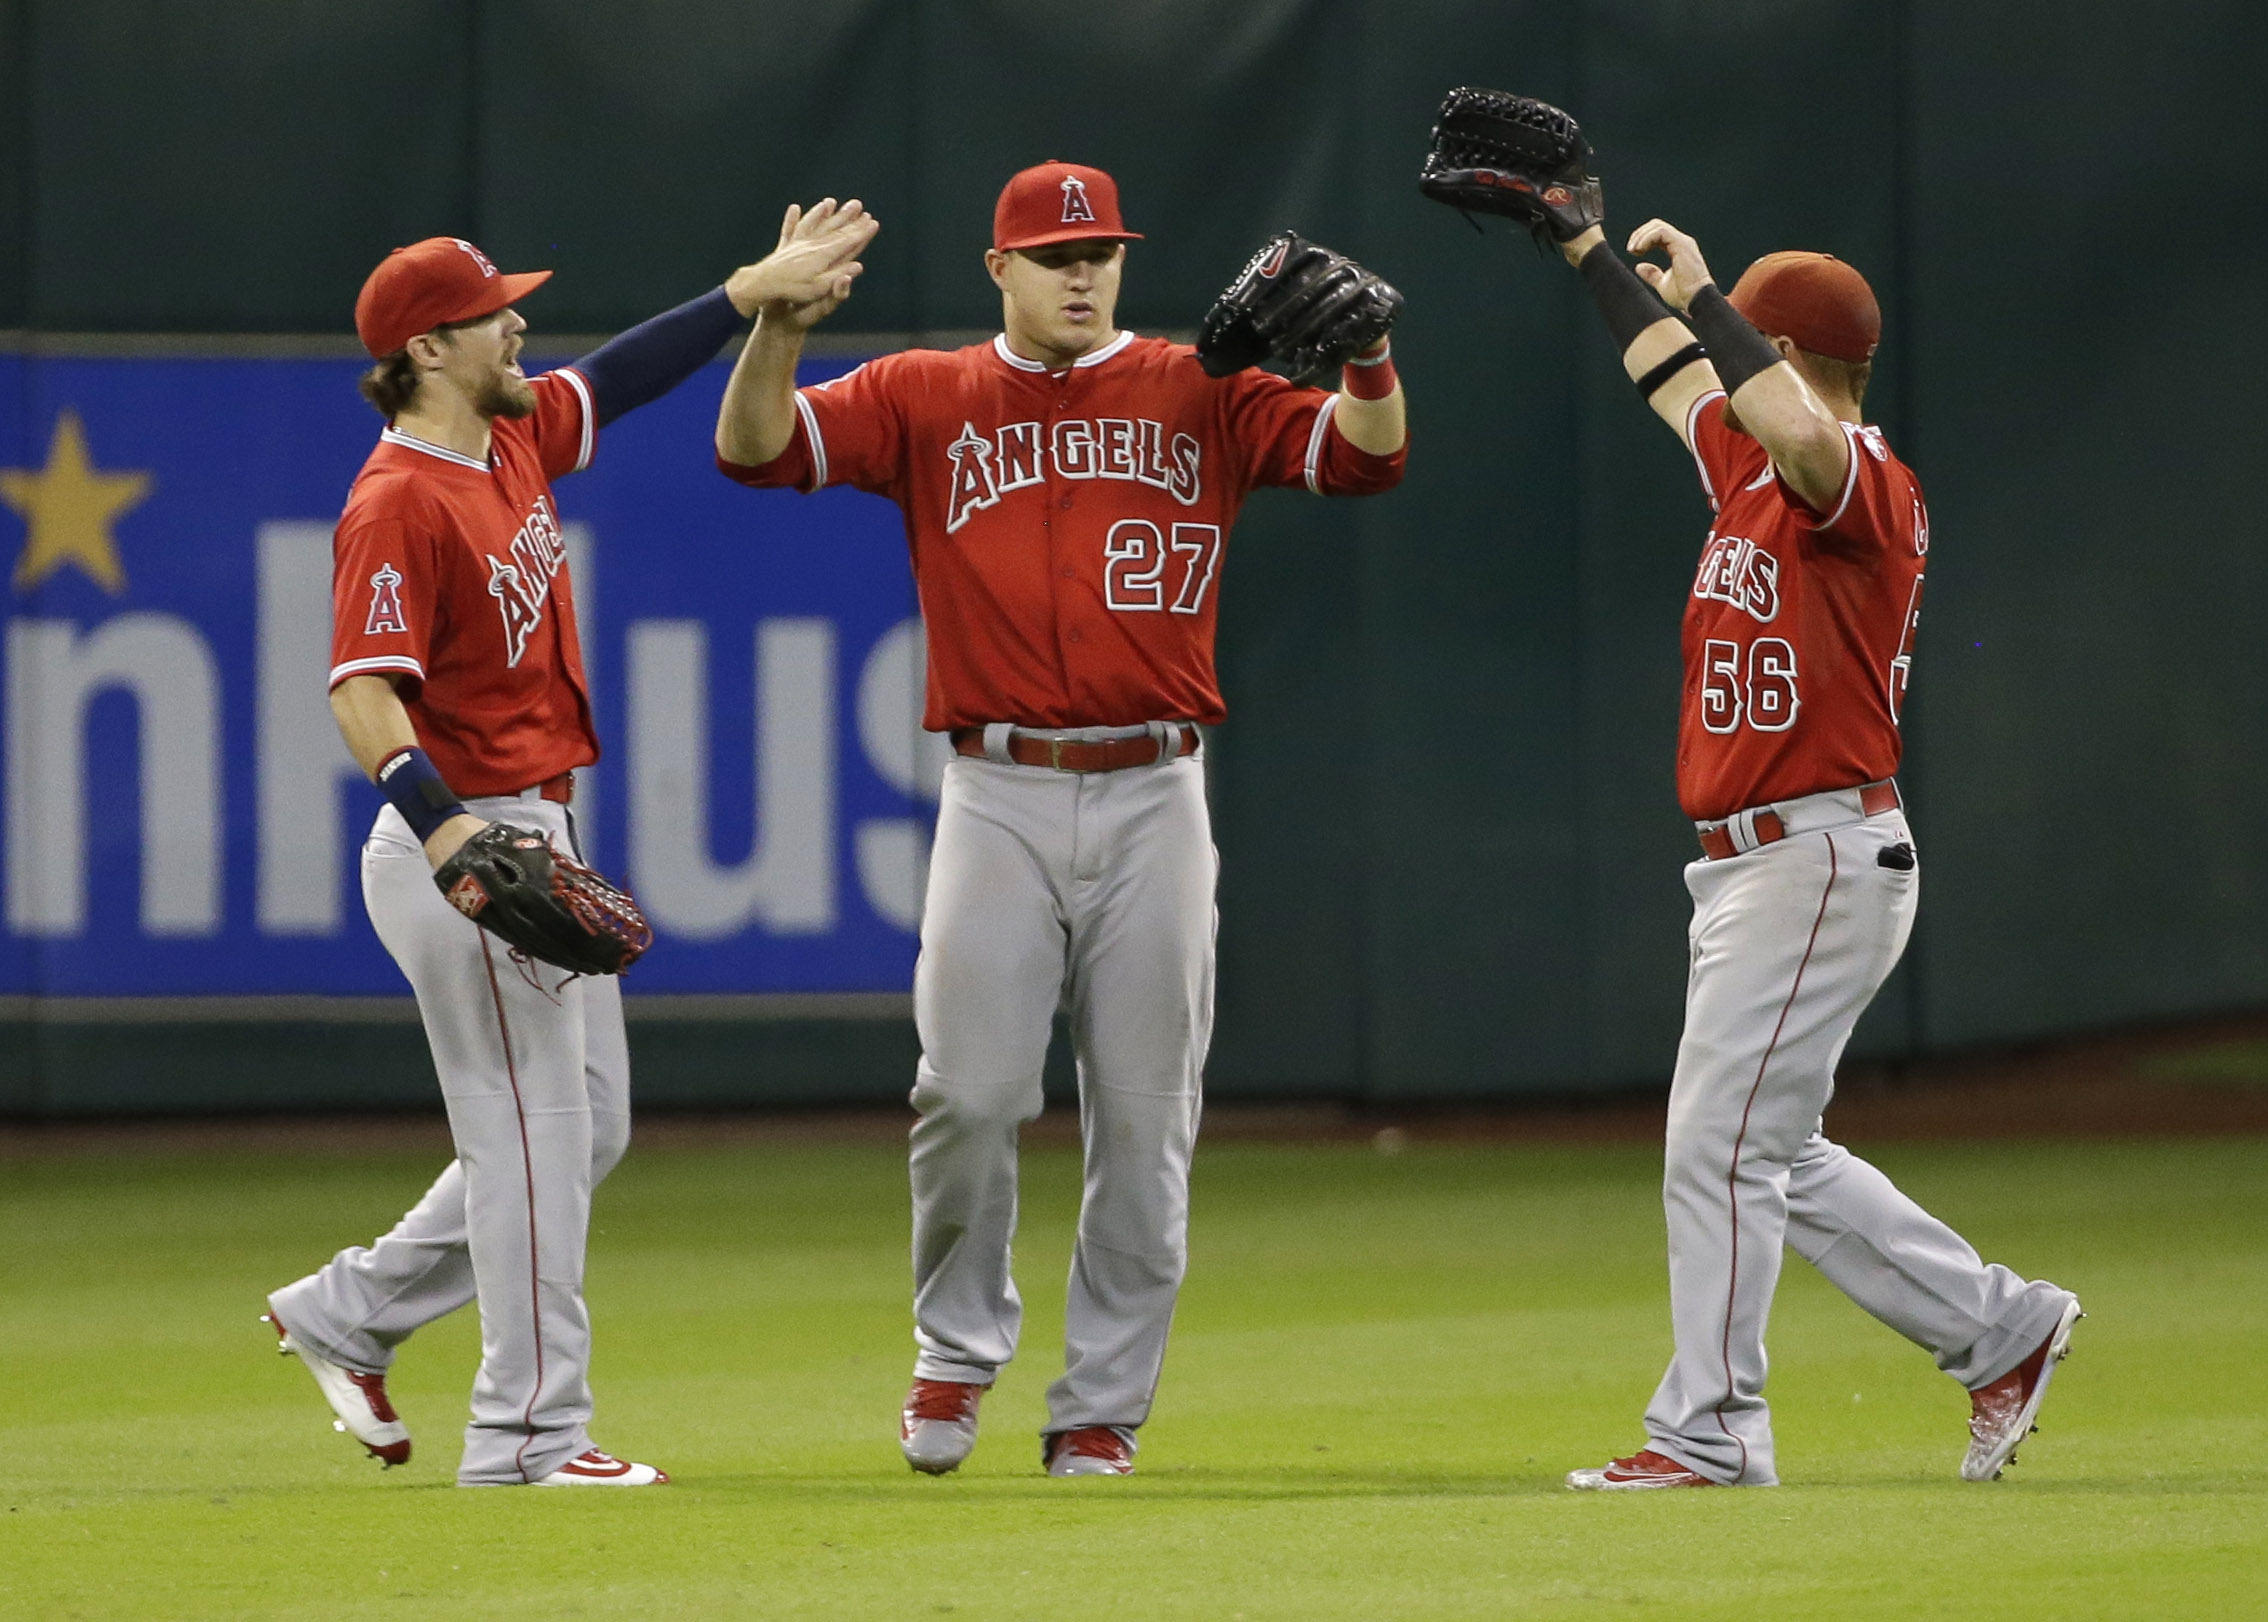 Los Angeles Angels' Collin Cowgill, left, Mike Trout (27) and Kole Calhoun (56) celebrate after the Angels defeated the Houston Astros 4-3 in a baseball game Tuesday, Sept. 22, 2015, in Houston. (AP Photo/David J. Phillip)